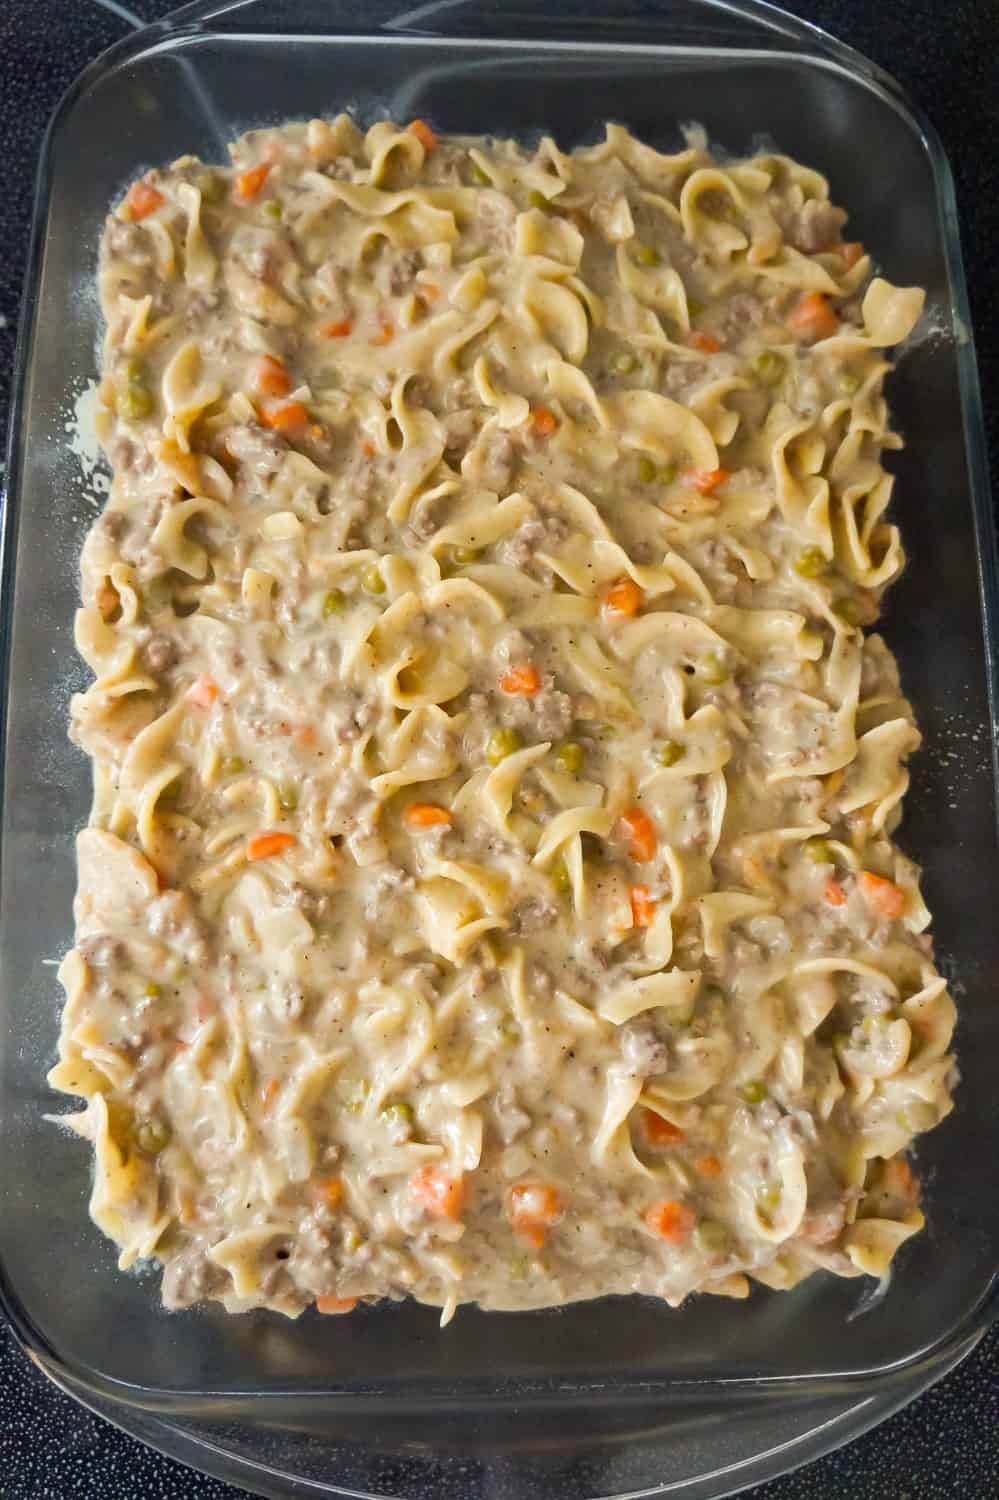 beef noodle casserole in a baking dish